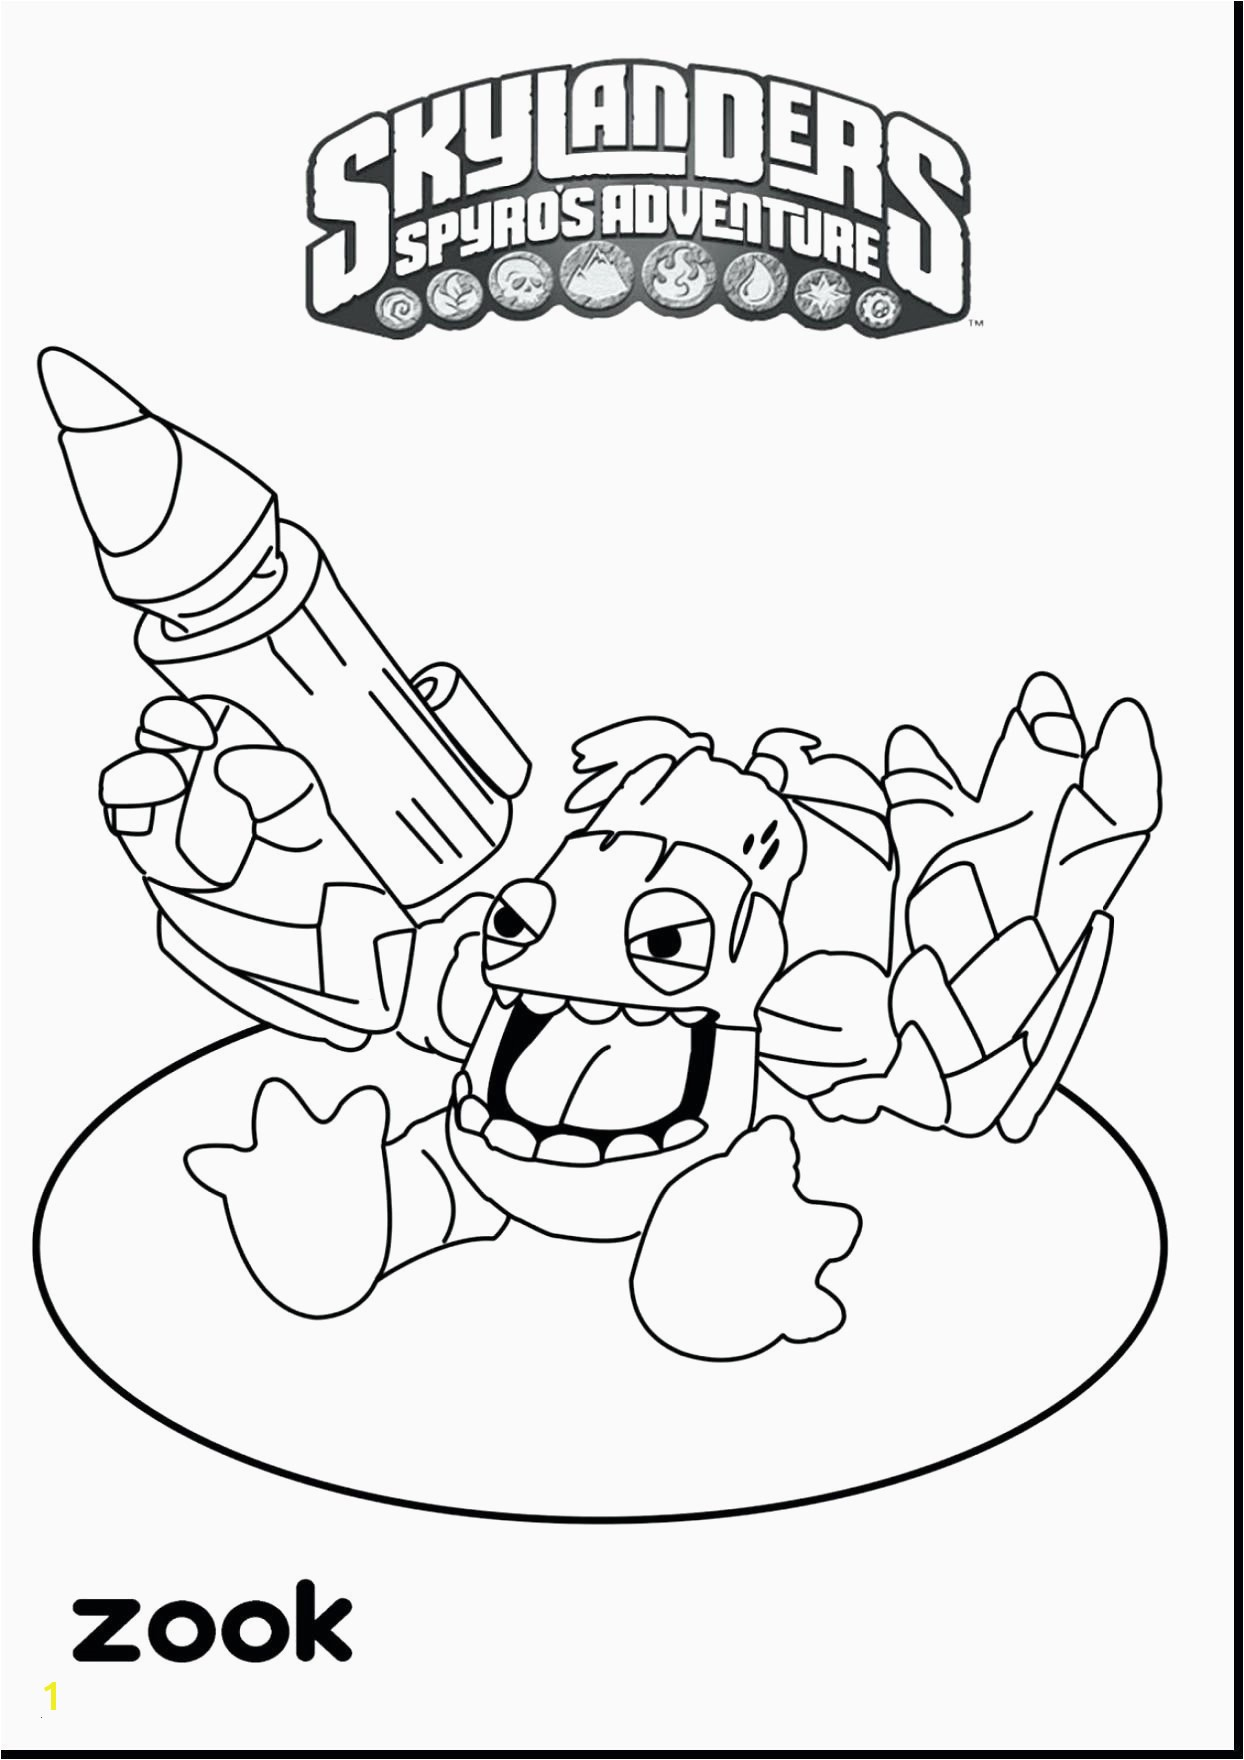 Cyndaquil Coloring Page Coloring Pages for Teachers 21csb